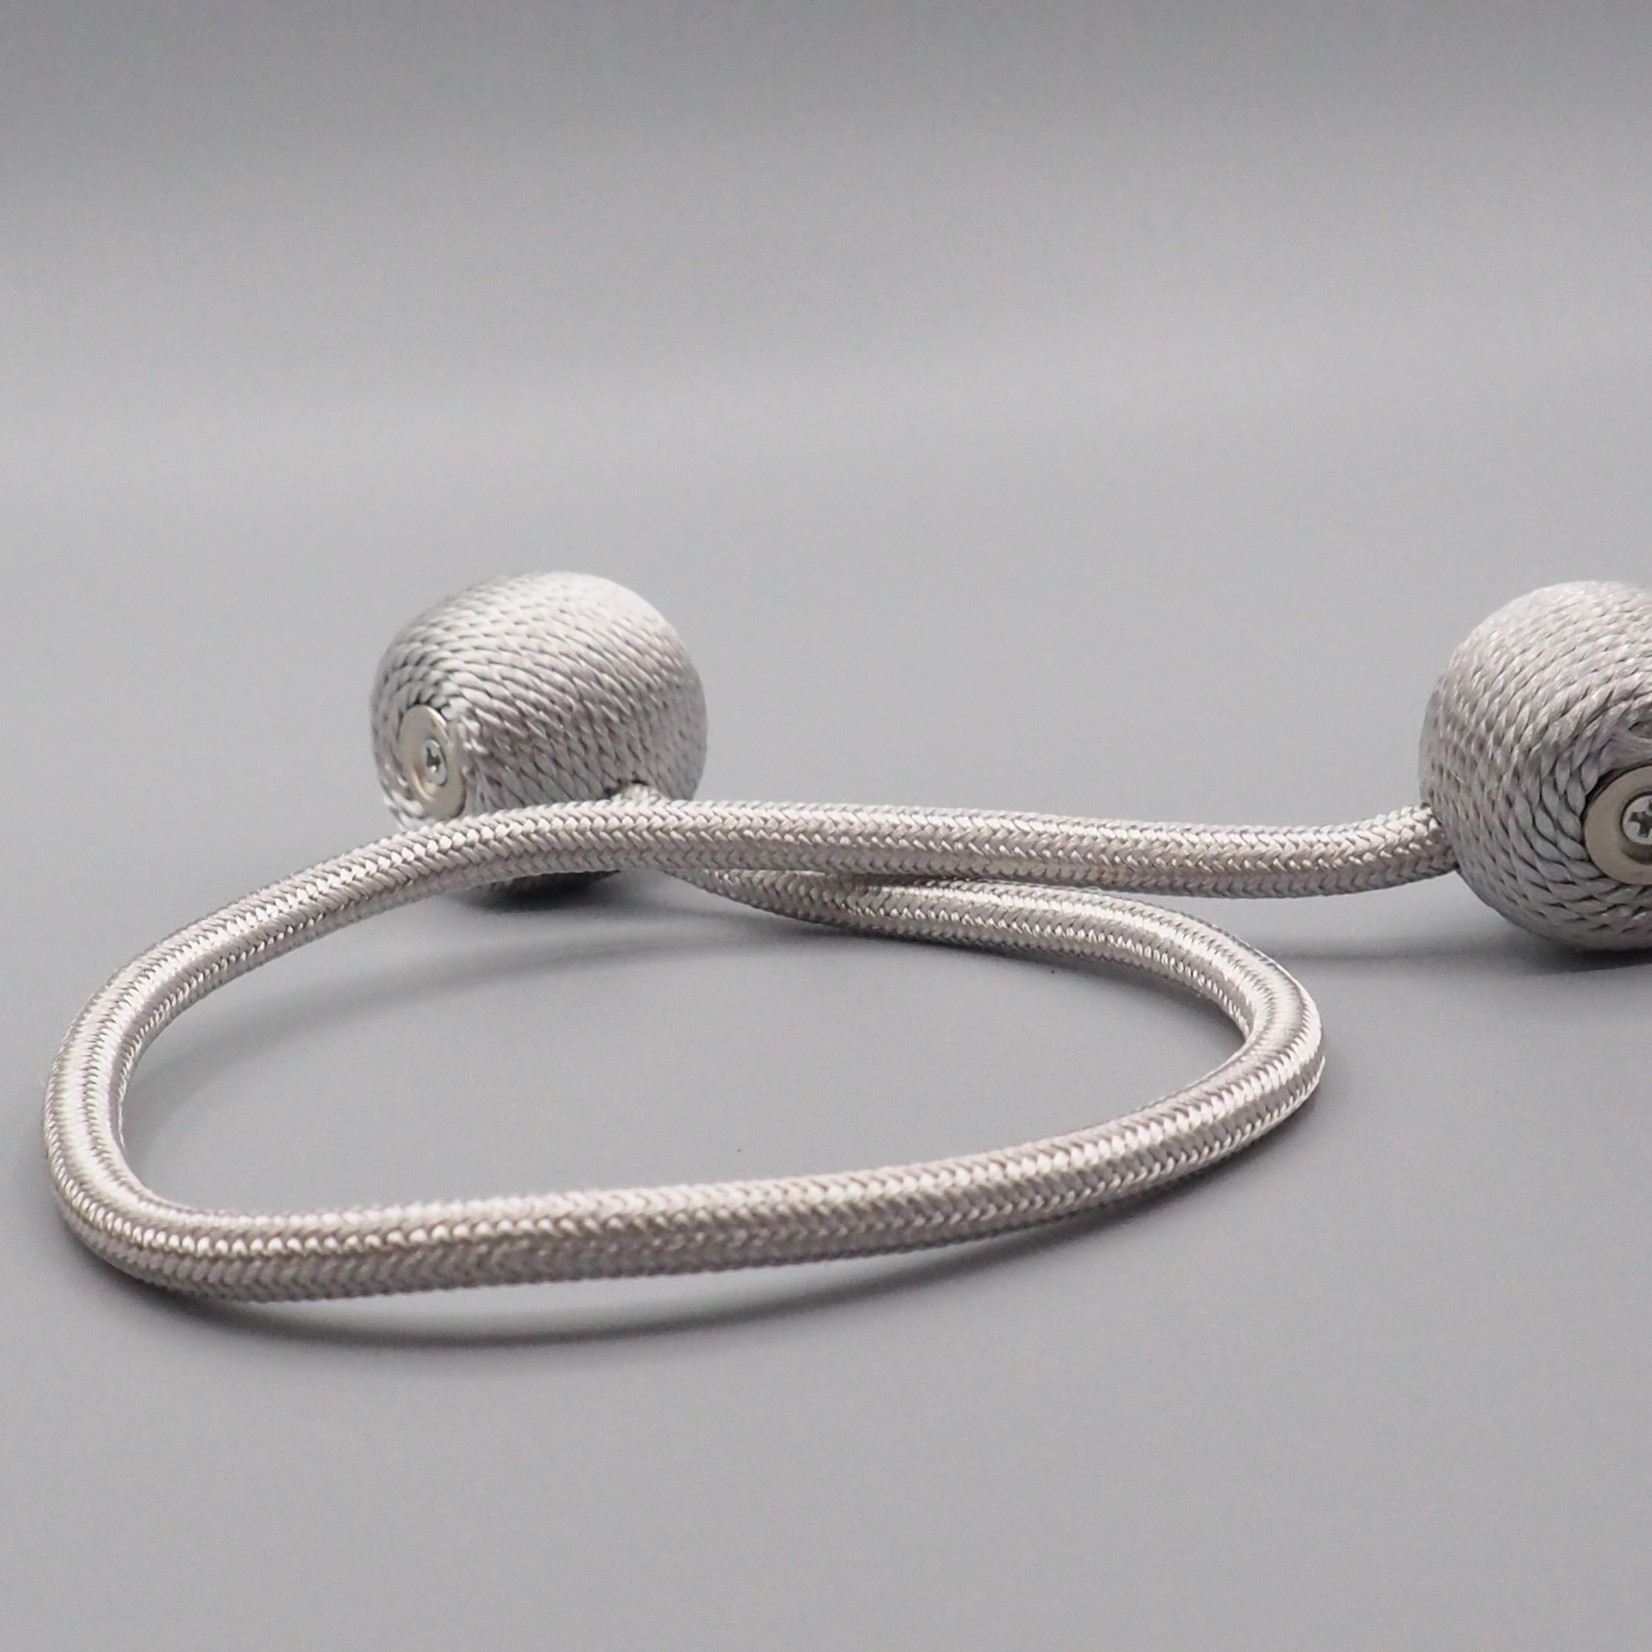 Balls and Rope Magnetic Drape Tiebacks (2 pieces)